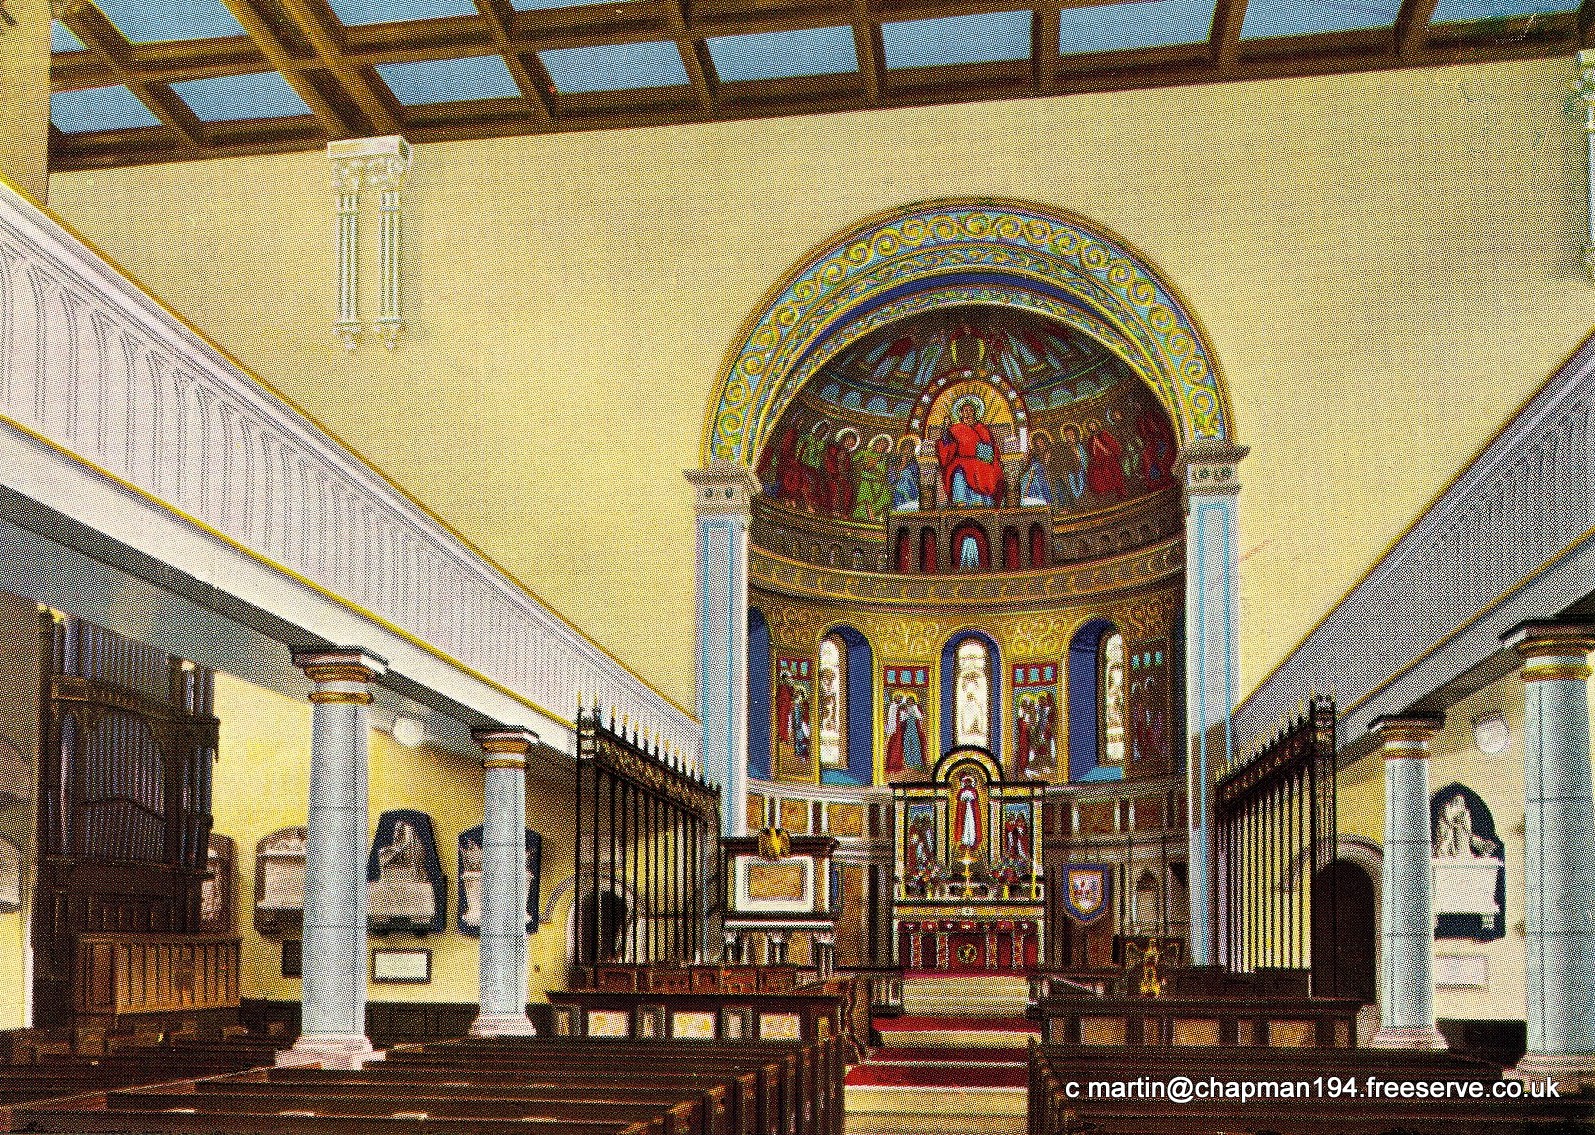 1957 Redecorated Church Interior